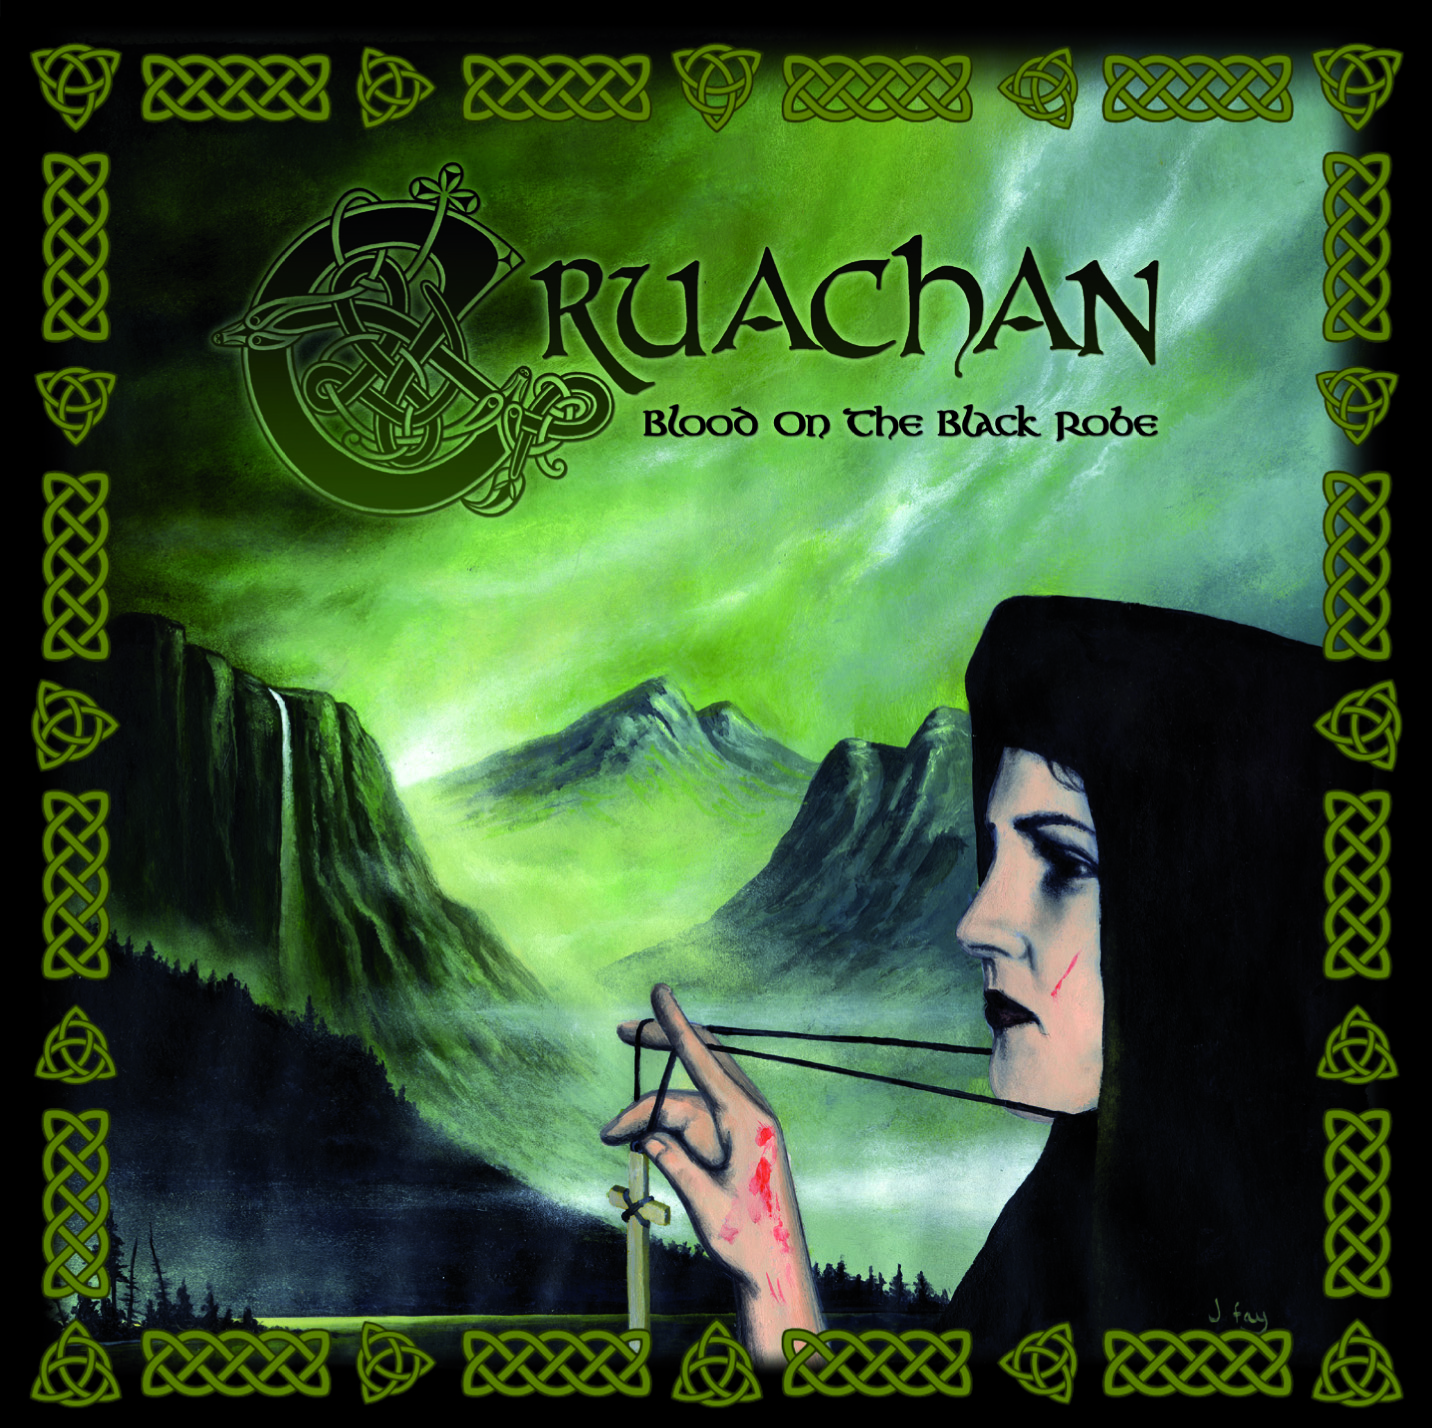 Cruachan – Blood on the Black Robe Review